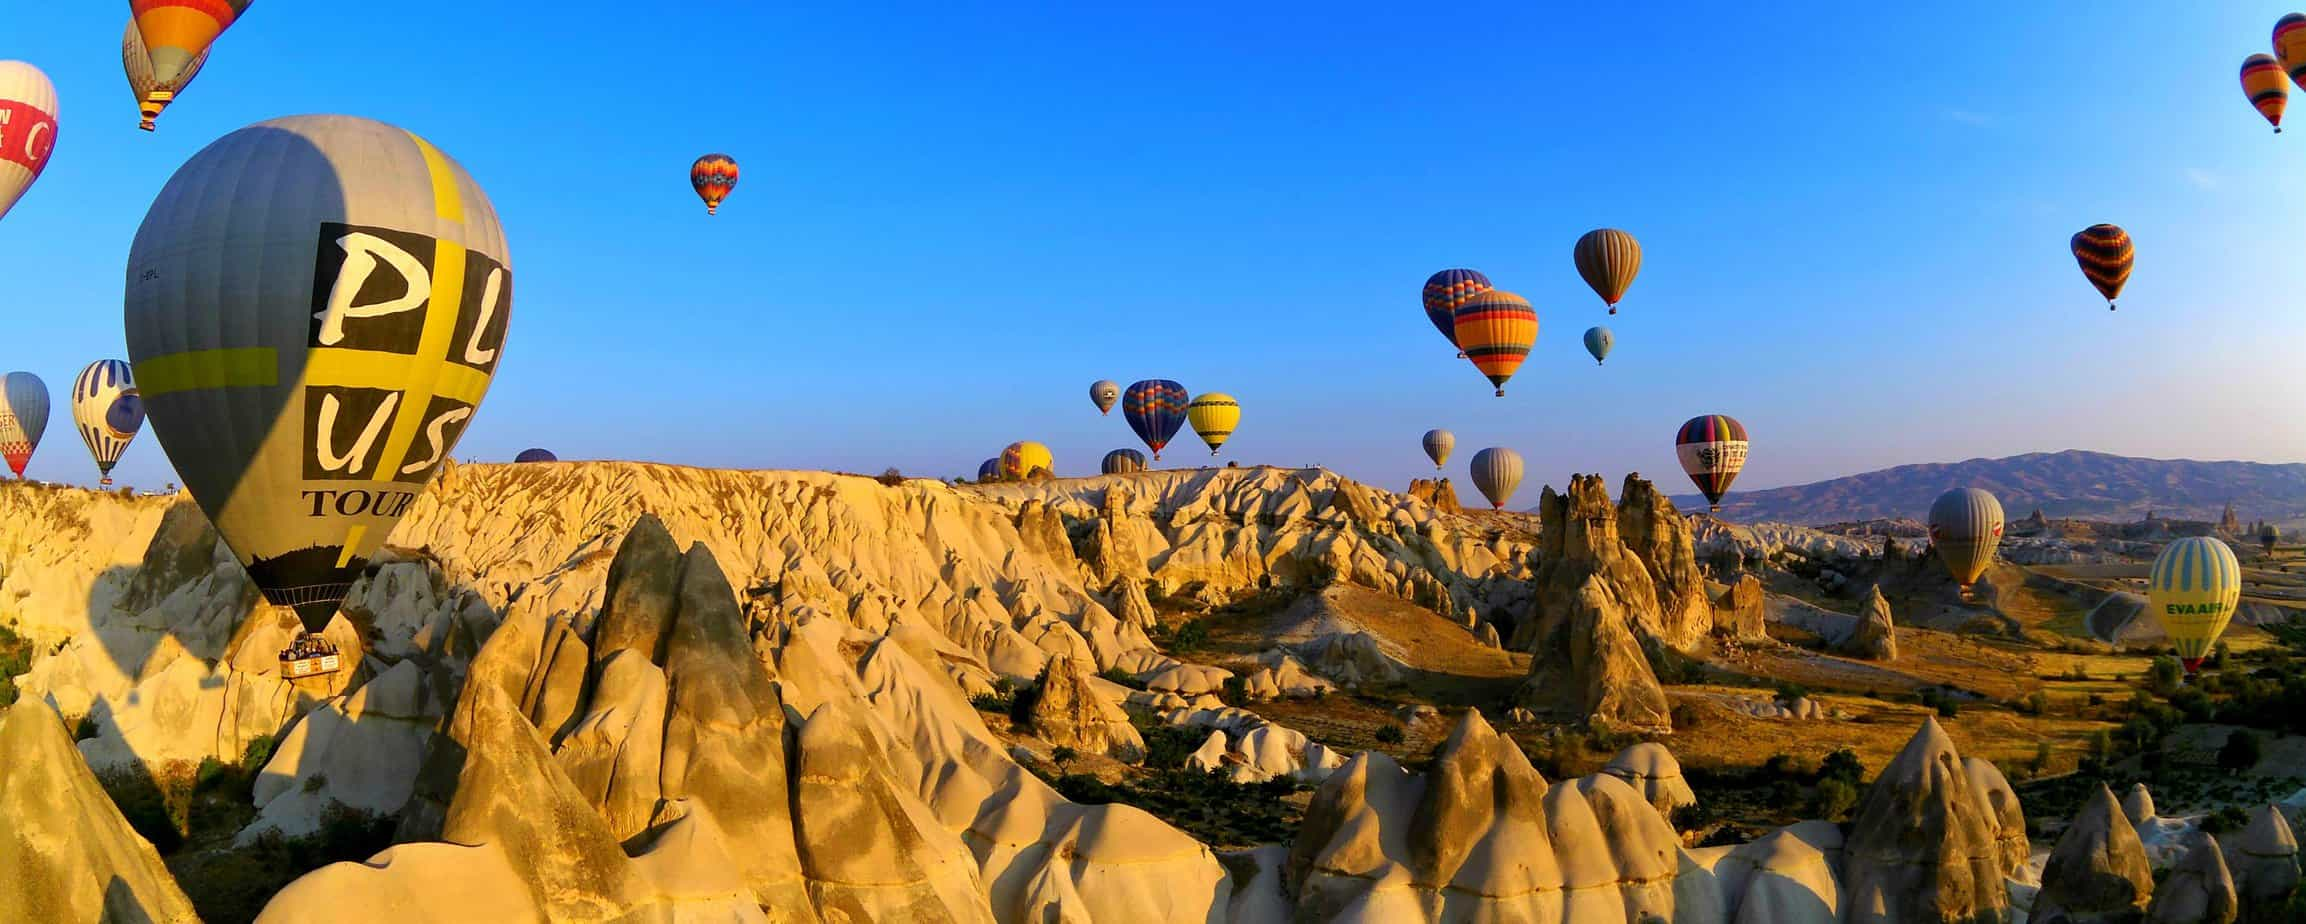 A Magical Experience in Cappadocia – Hot Air Balloon With Butterfly Balloons